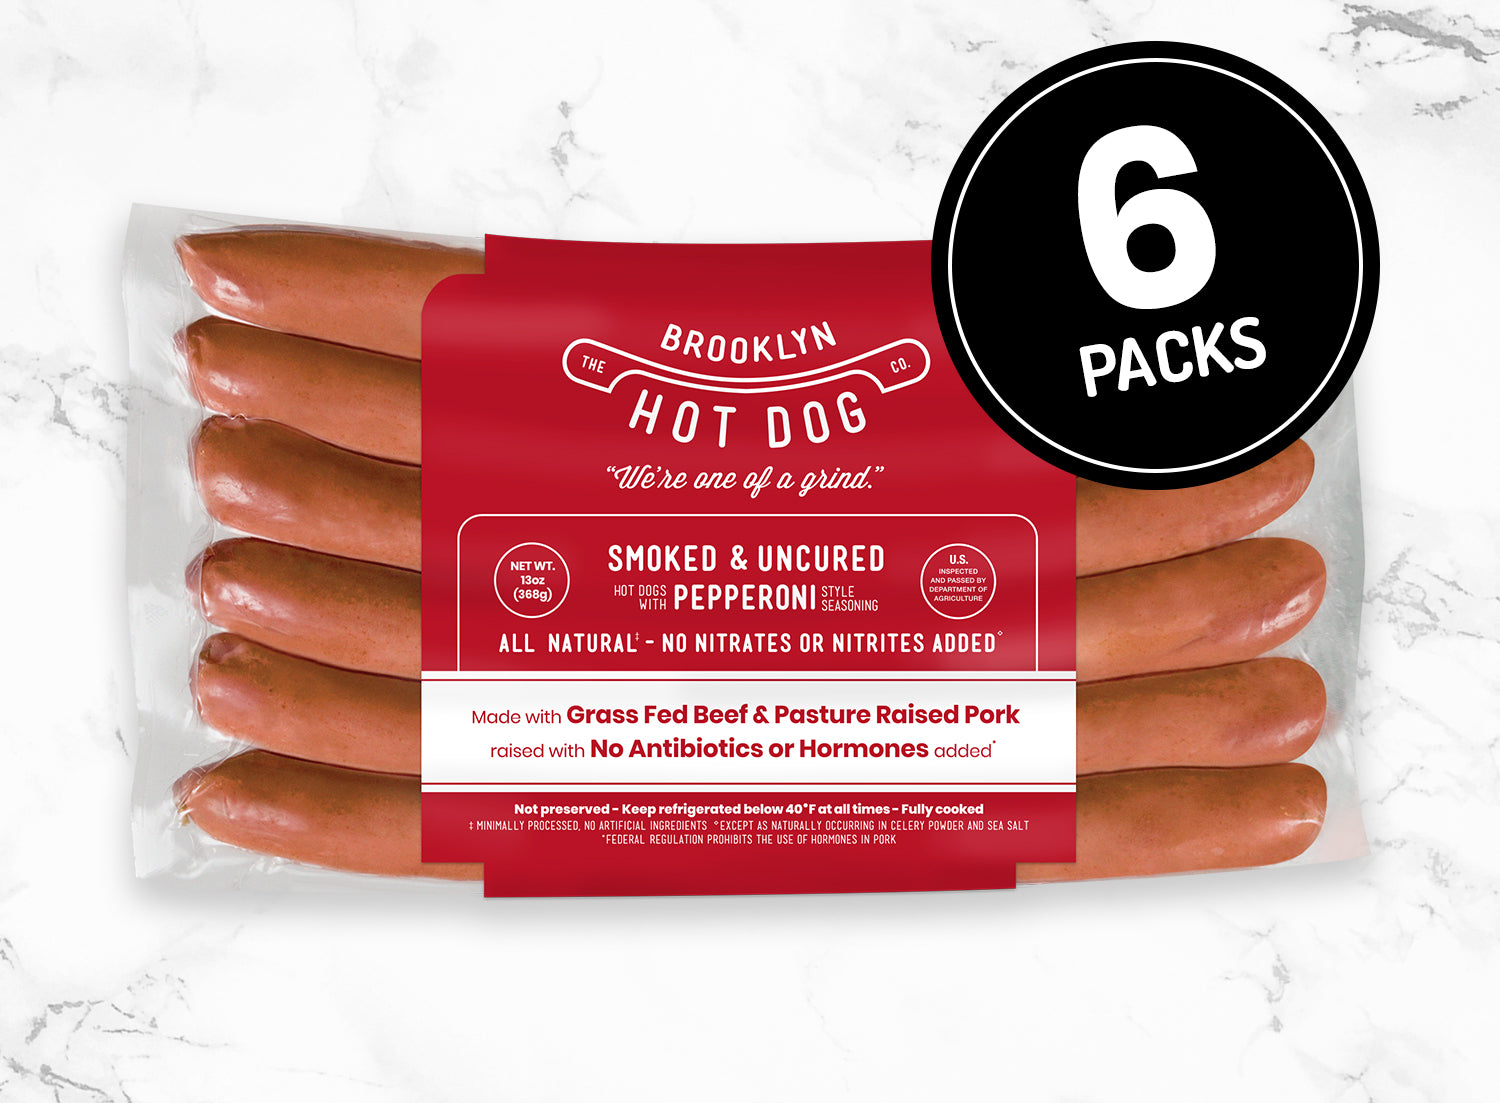 6-Packs: Pepperoni